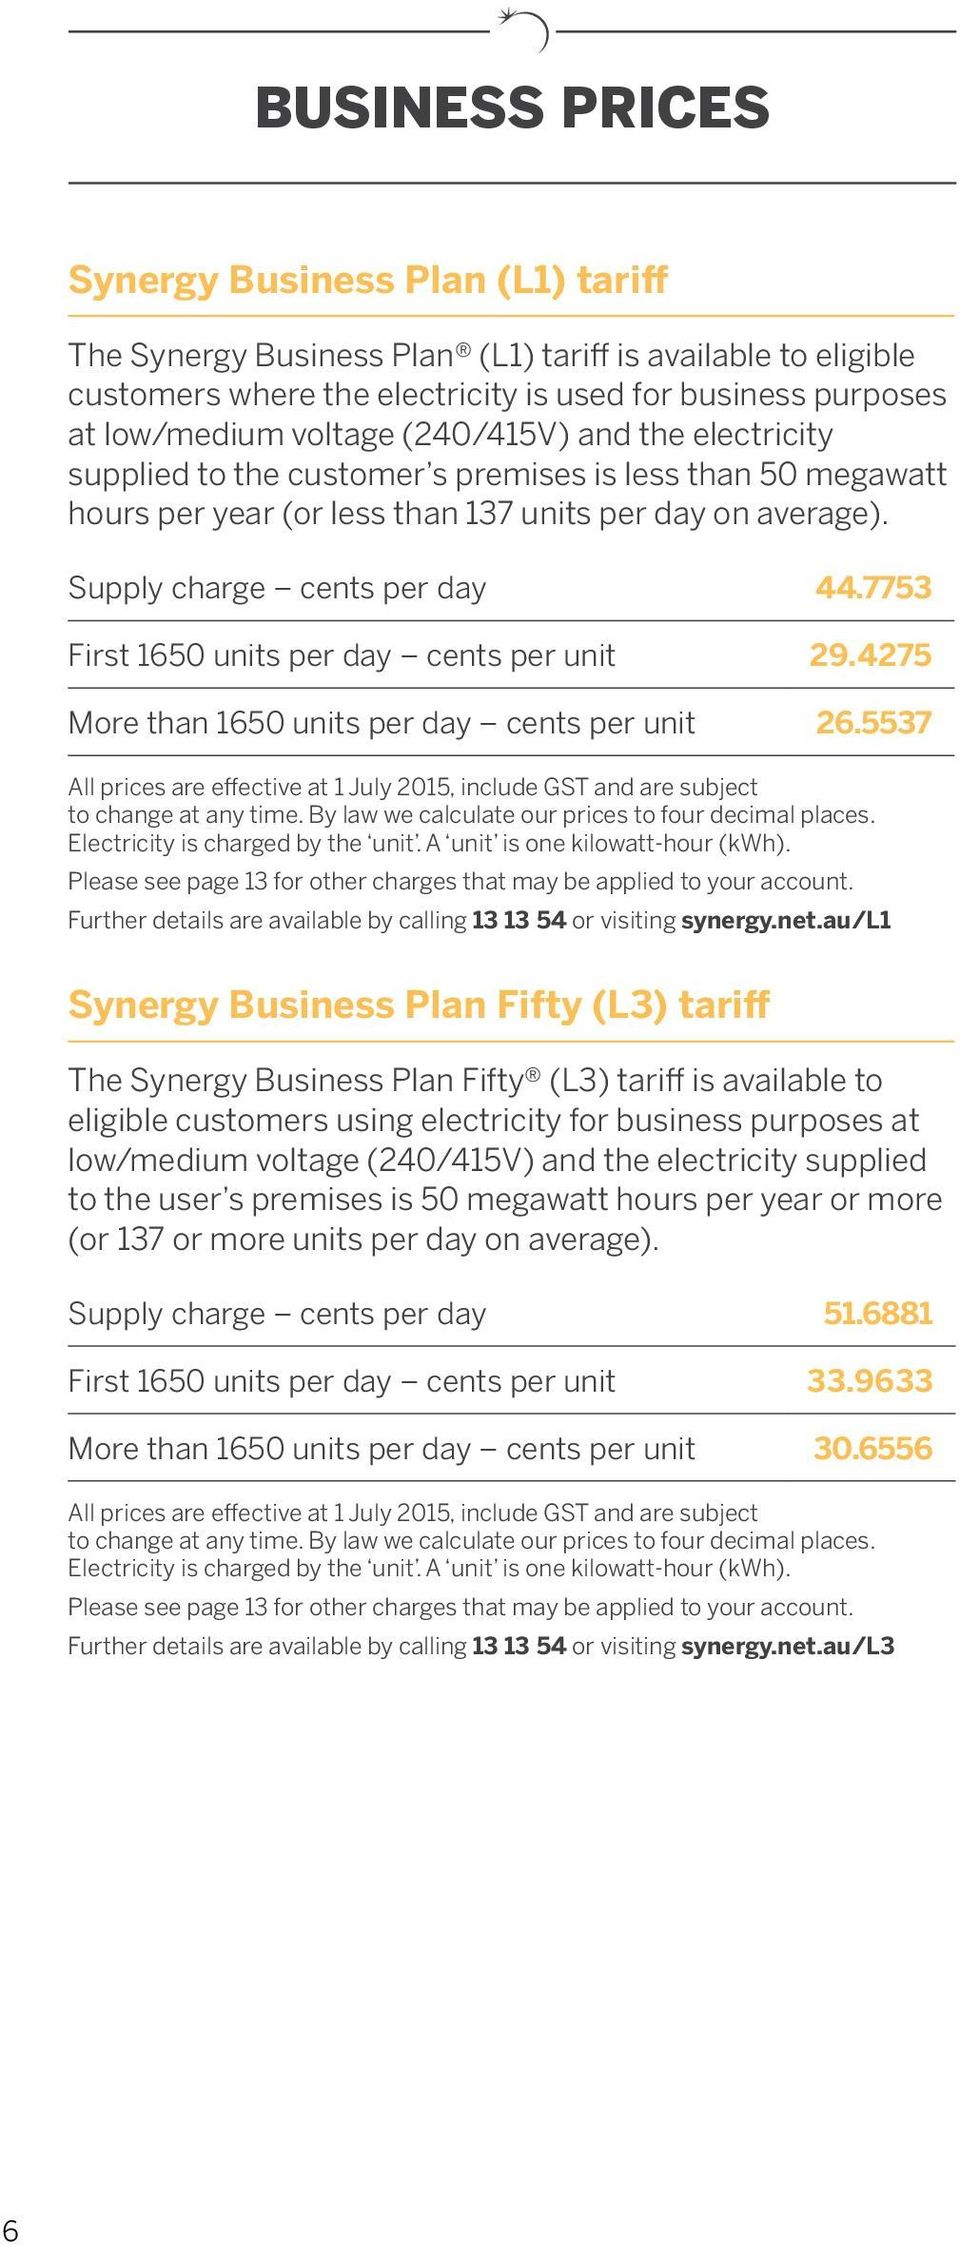 7753 First 1650 units per day cents per unit 29.4275 More than 1650 units per day cents per unit 26.5537 Further details are available by calling 13 13 54 or visiting synergy.net.